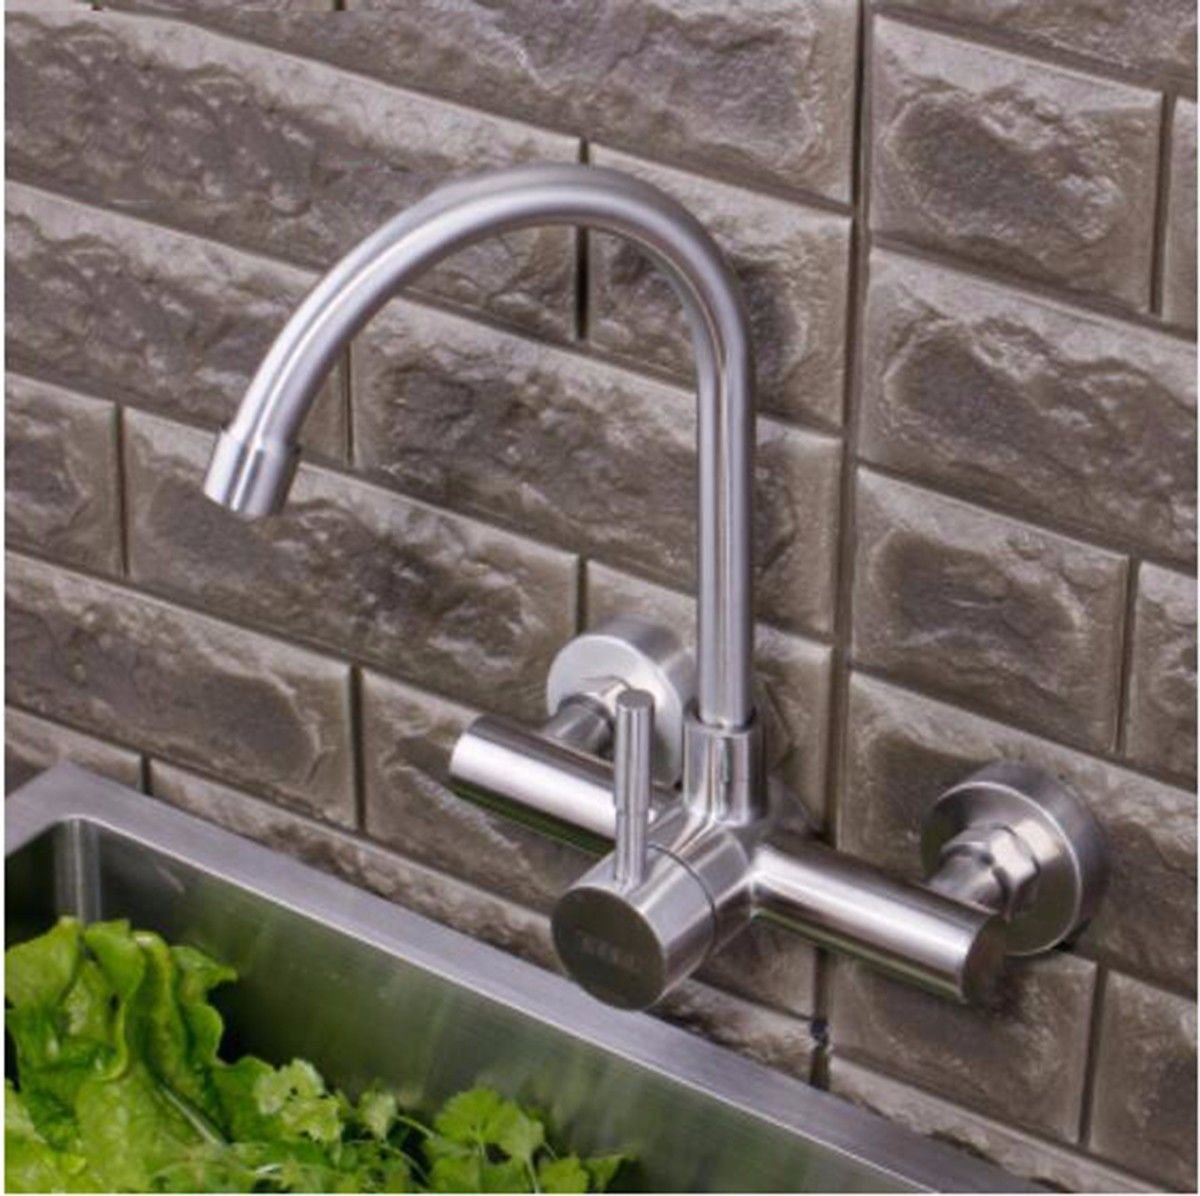 E Hlluya Professional Sink Mixer Tap Kitchen Faucet The 304 Stainless Steel WALL MOUNTED KITCHEN FAUCET hot and cold dish washing basin mixer to redate the balcony laundry pool water tanks, D.